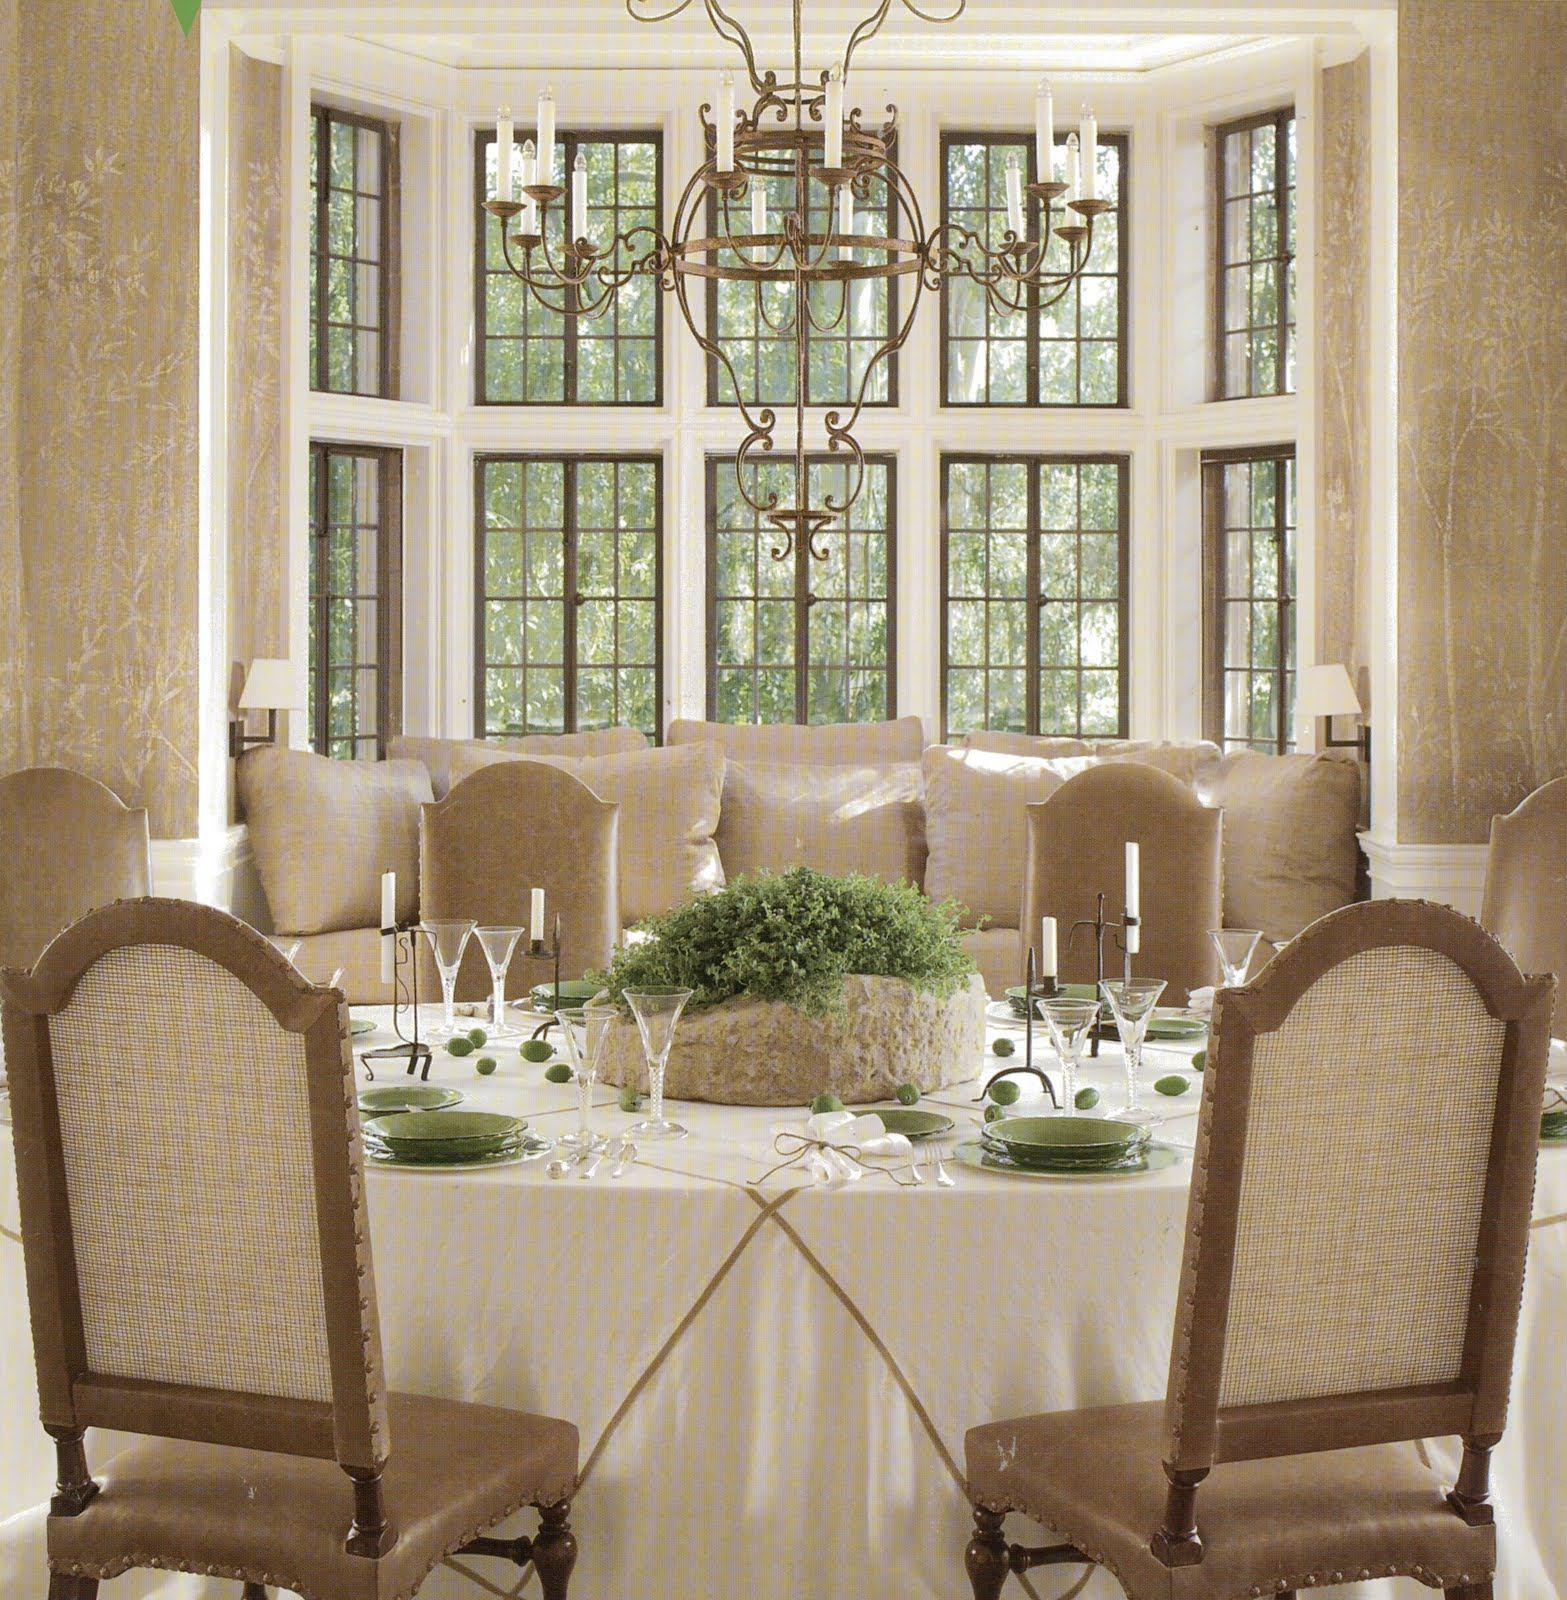 P s i love this ideas for dining room for Decorative pictures for dining room